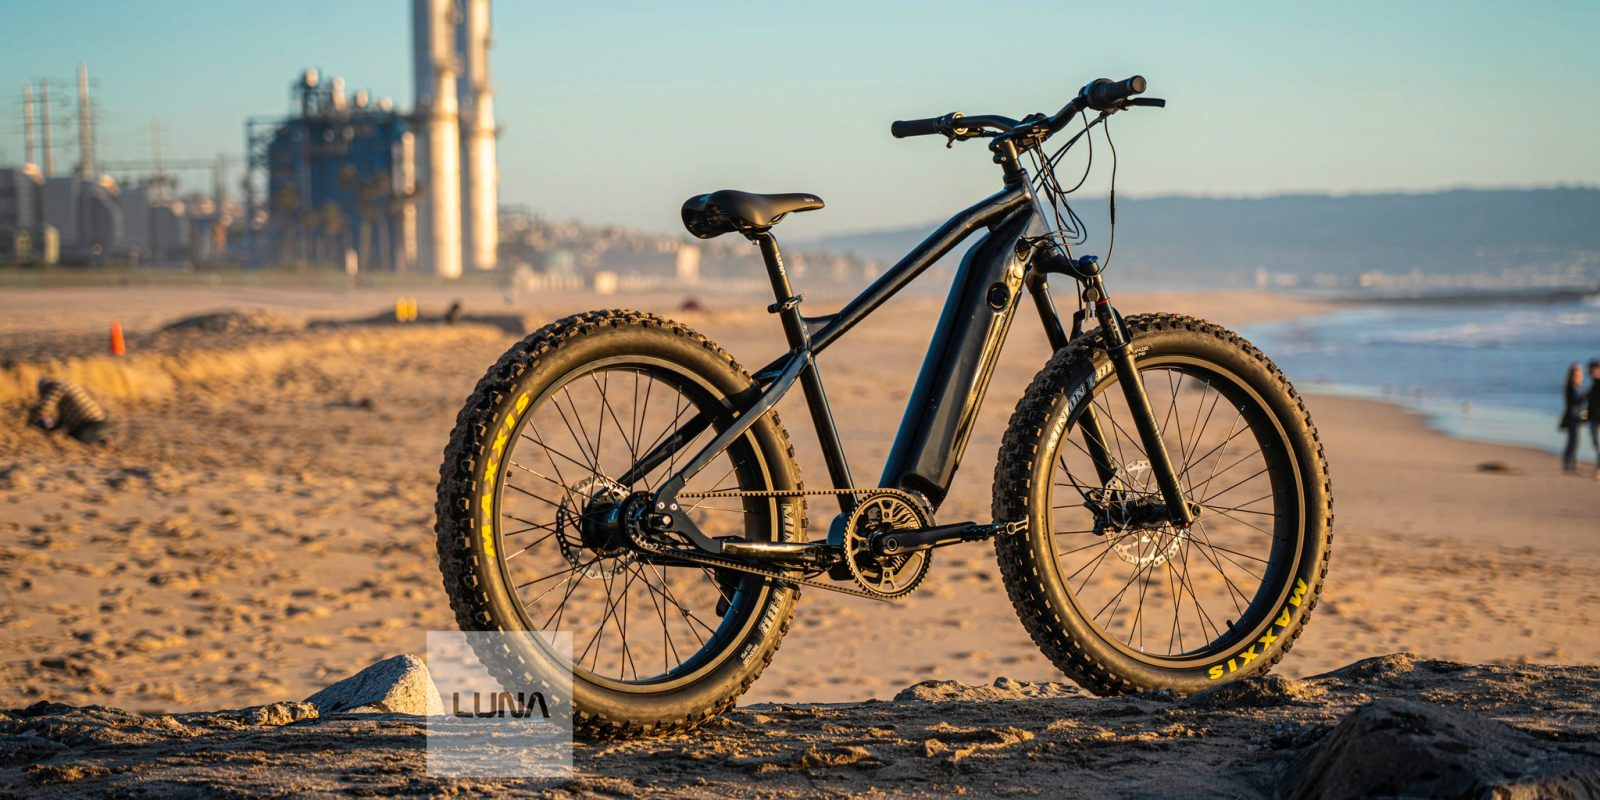 Want to ride a Fat BABE? Luna introduces new belt-drive electric bike